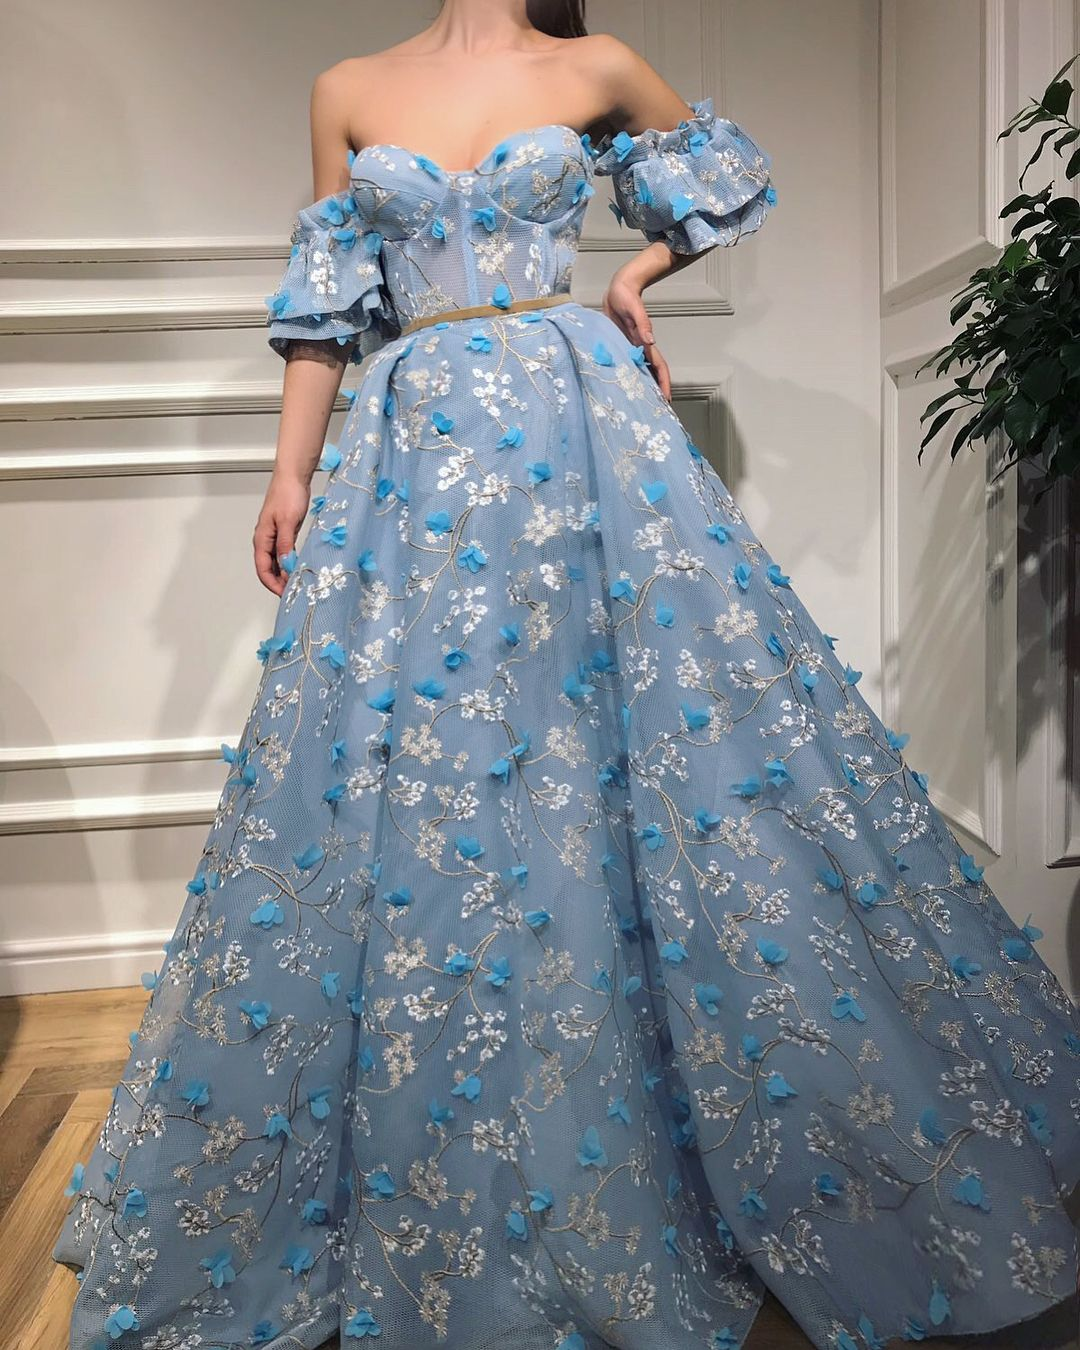 Pin by scarlett on gowns pinterest dresses gowns and prom dresses